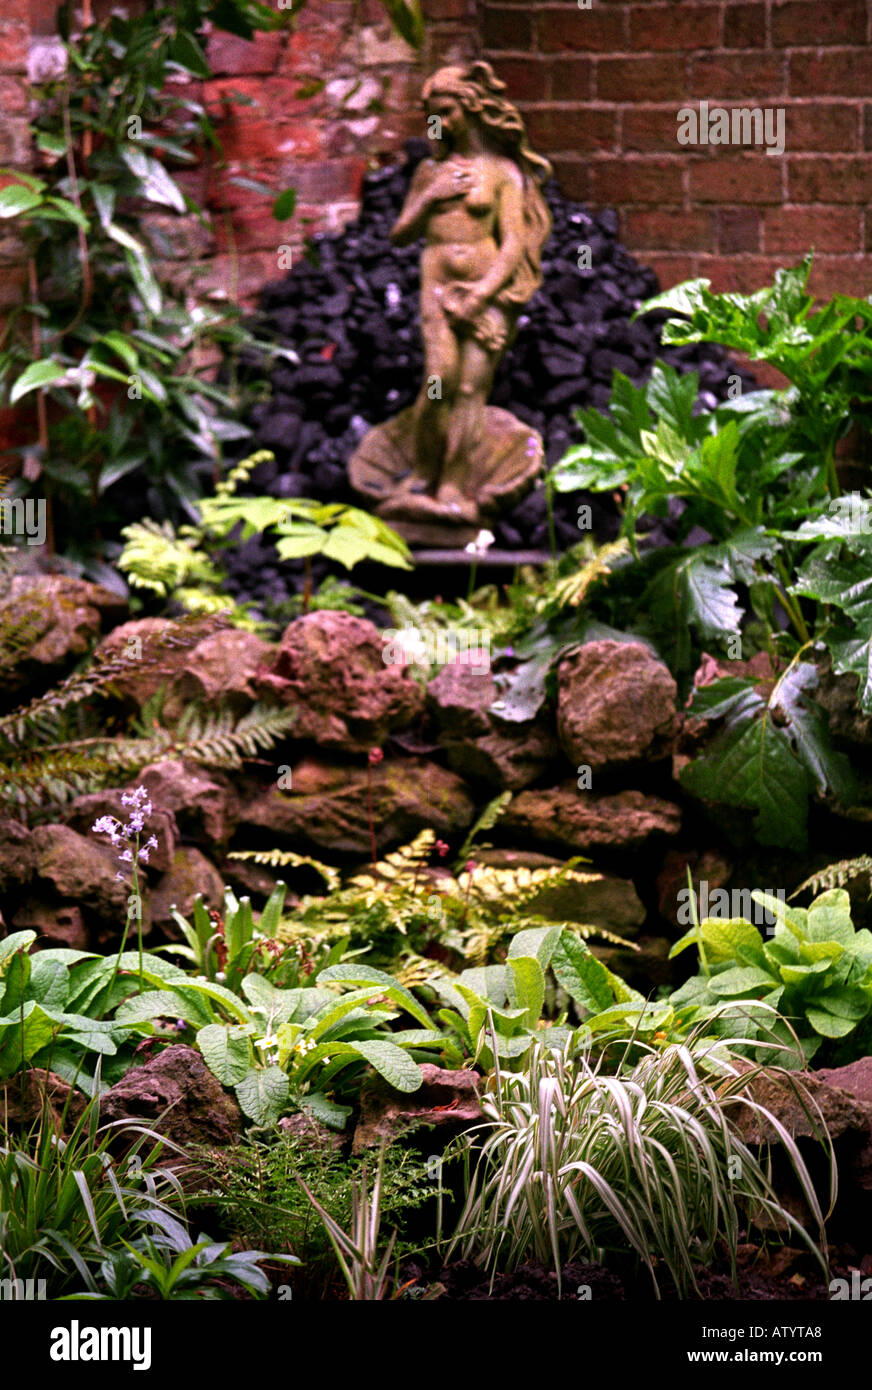 A ROCKERY WITH A STATUE OF VENUS IN THE STYLE OF BOTTICELLIS BIRTH OF VENUS Stock Photo